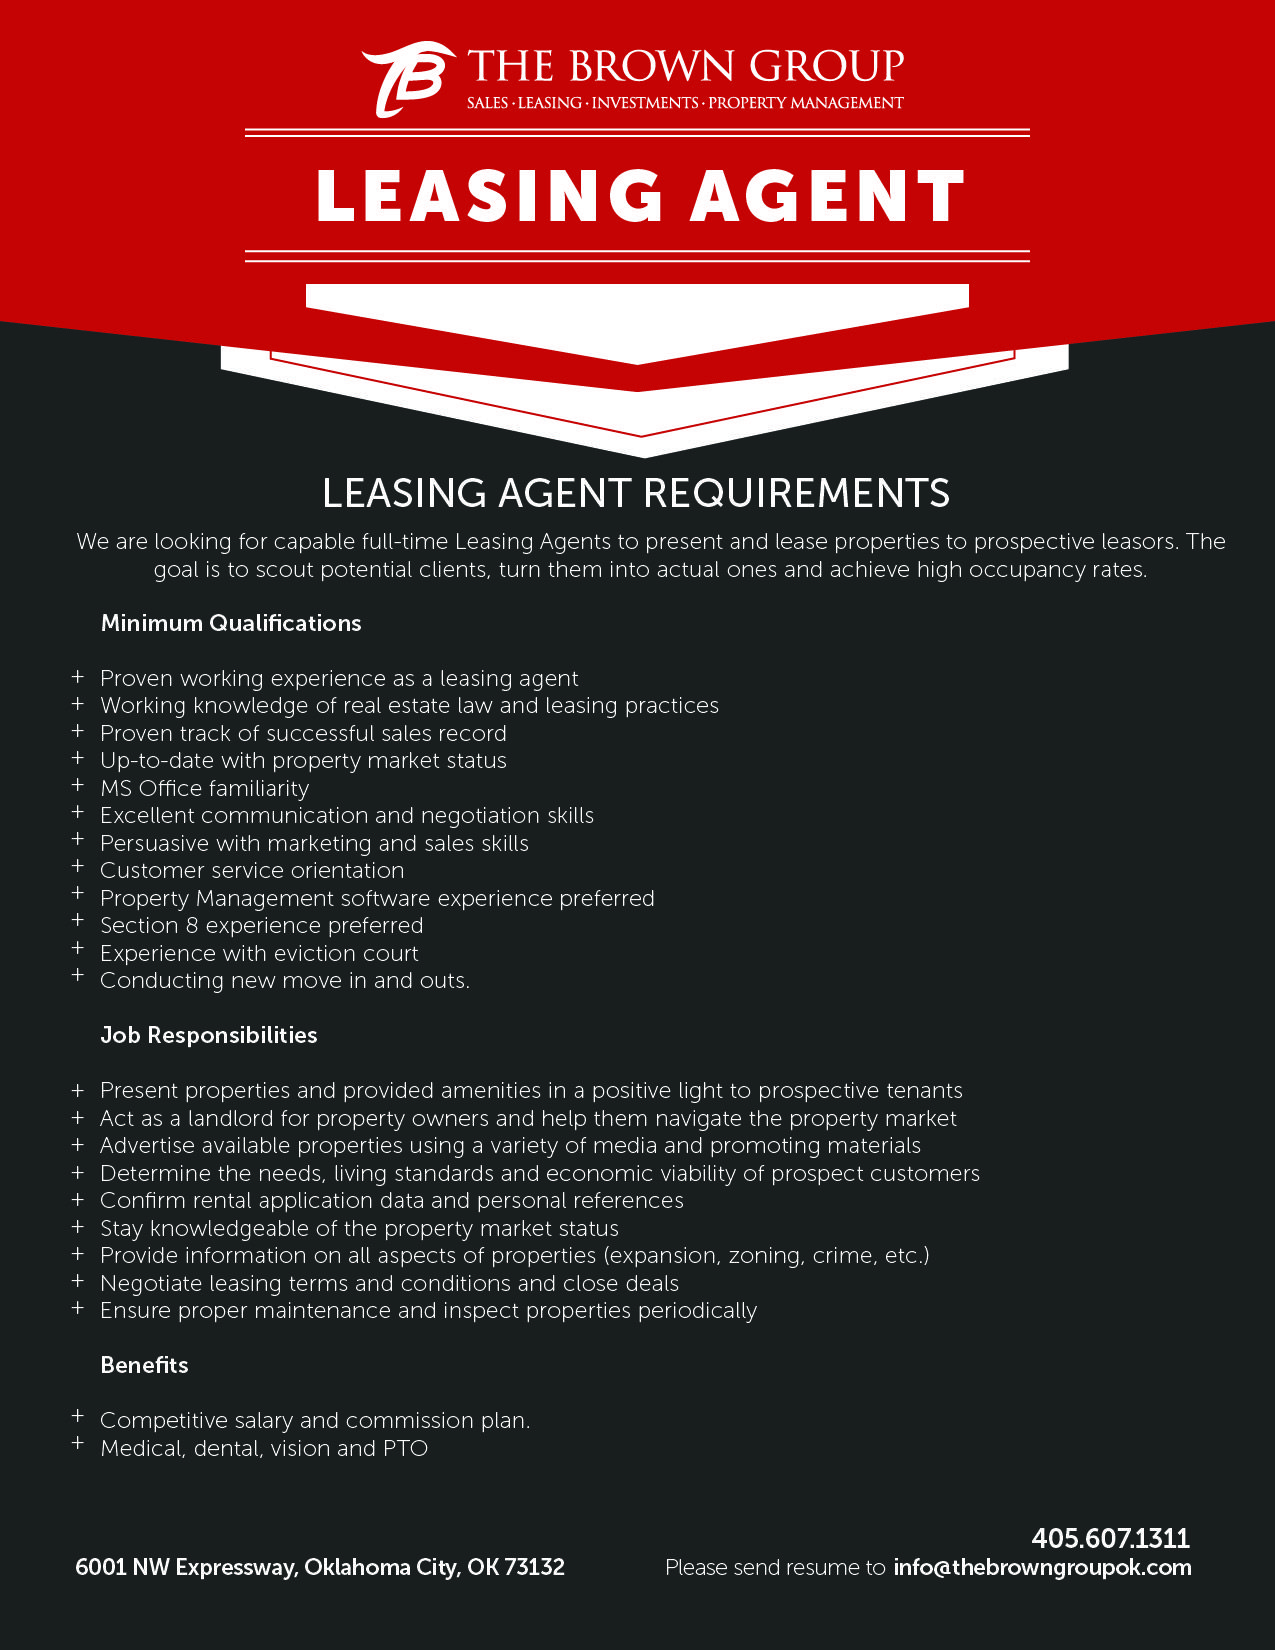 Searching For 2 Knowledgable Leasing Agents To Help Us Lease Our